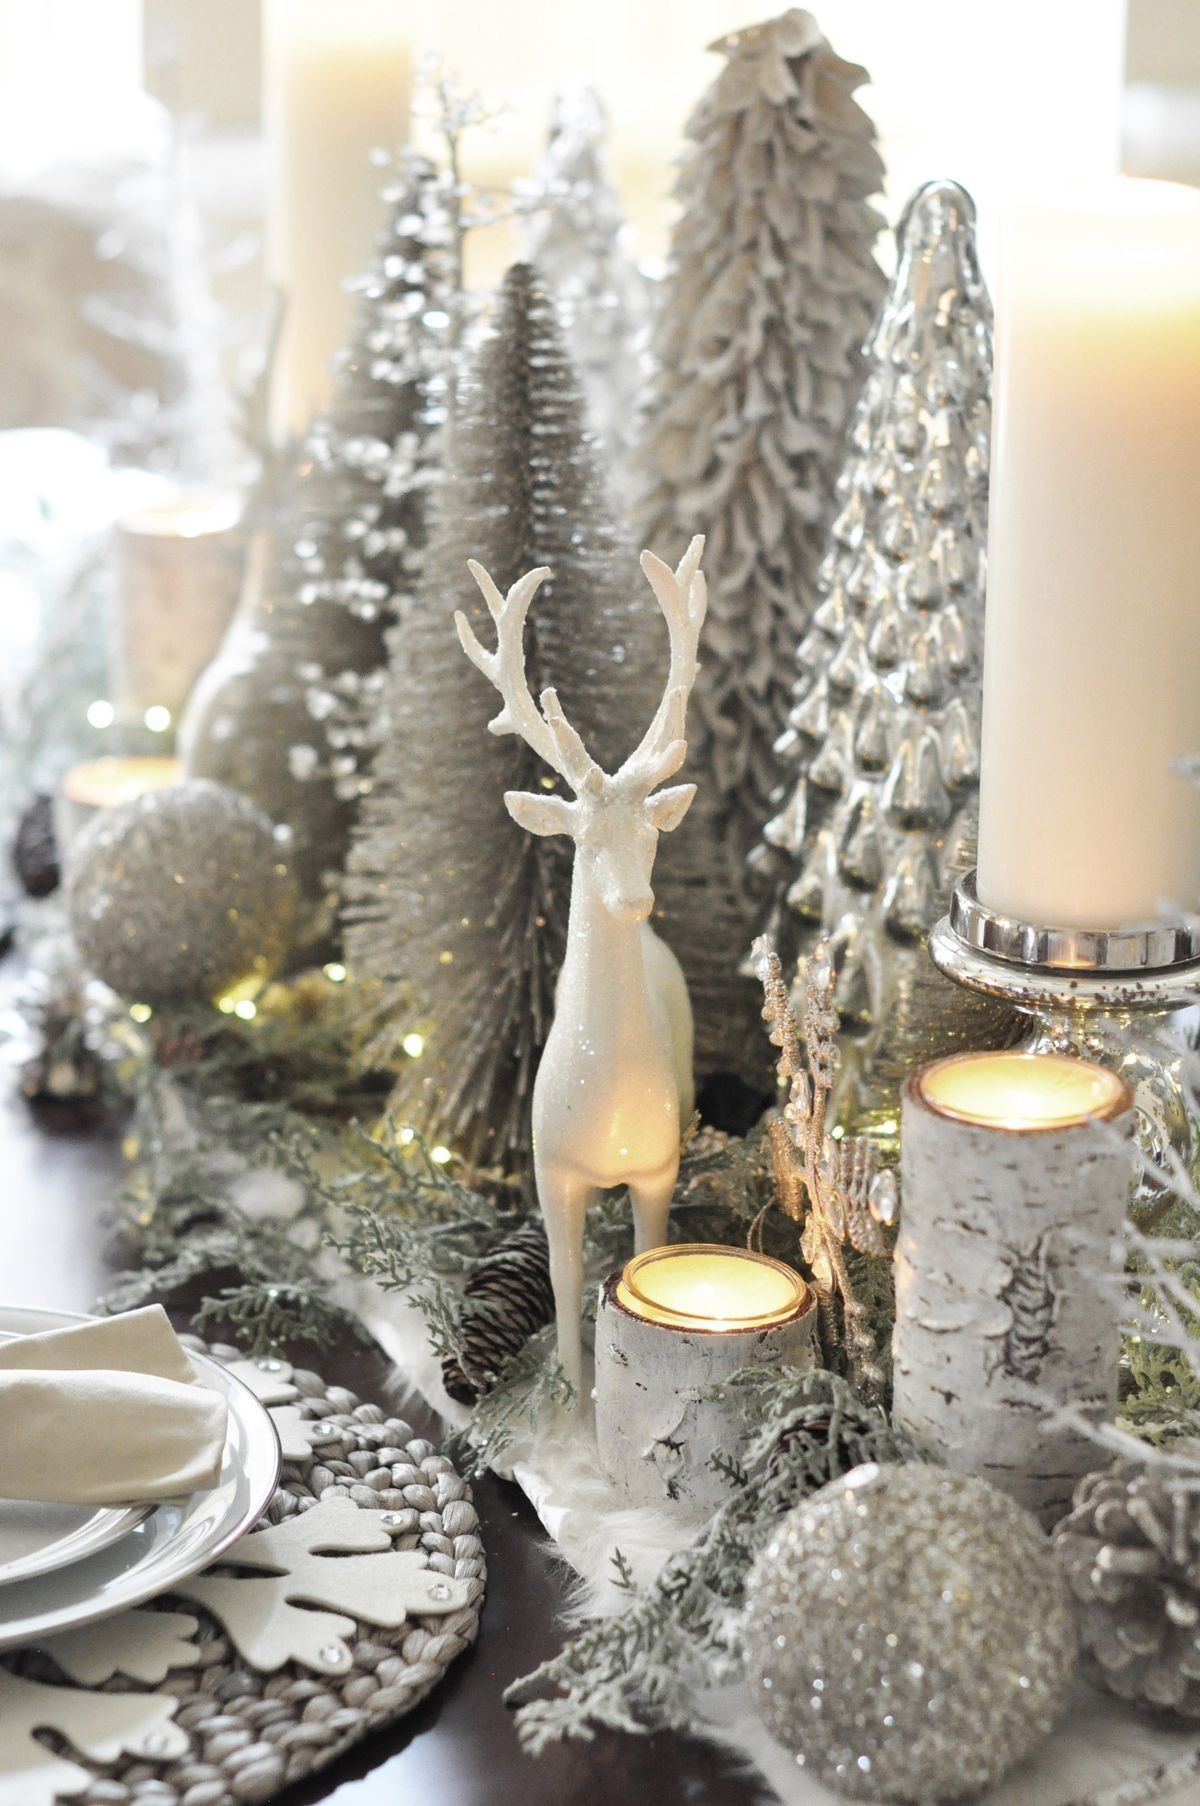 Have a Wonderful silver Christmas !! #xmastabledecorations